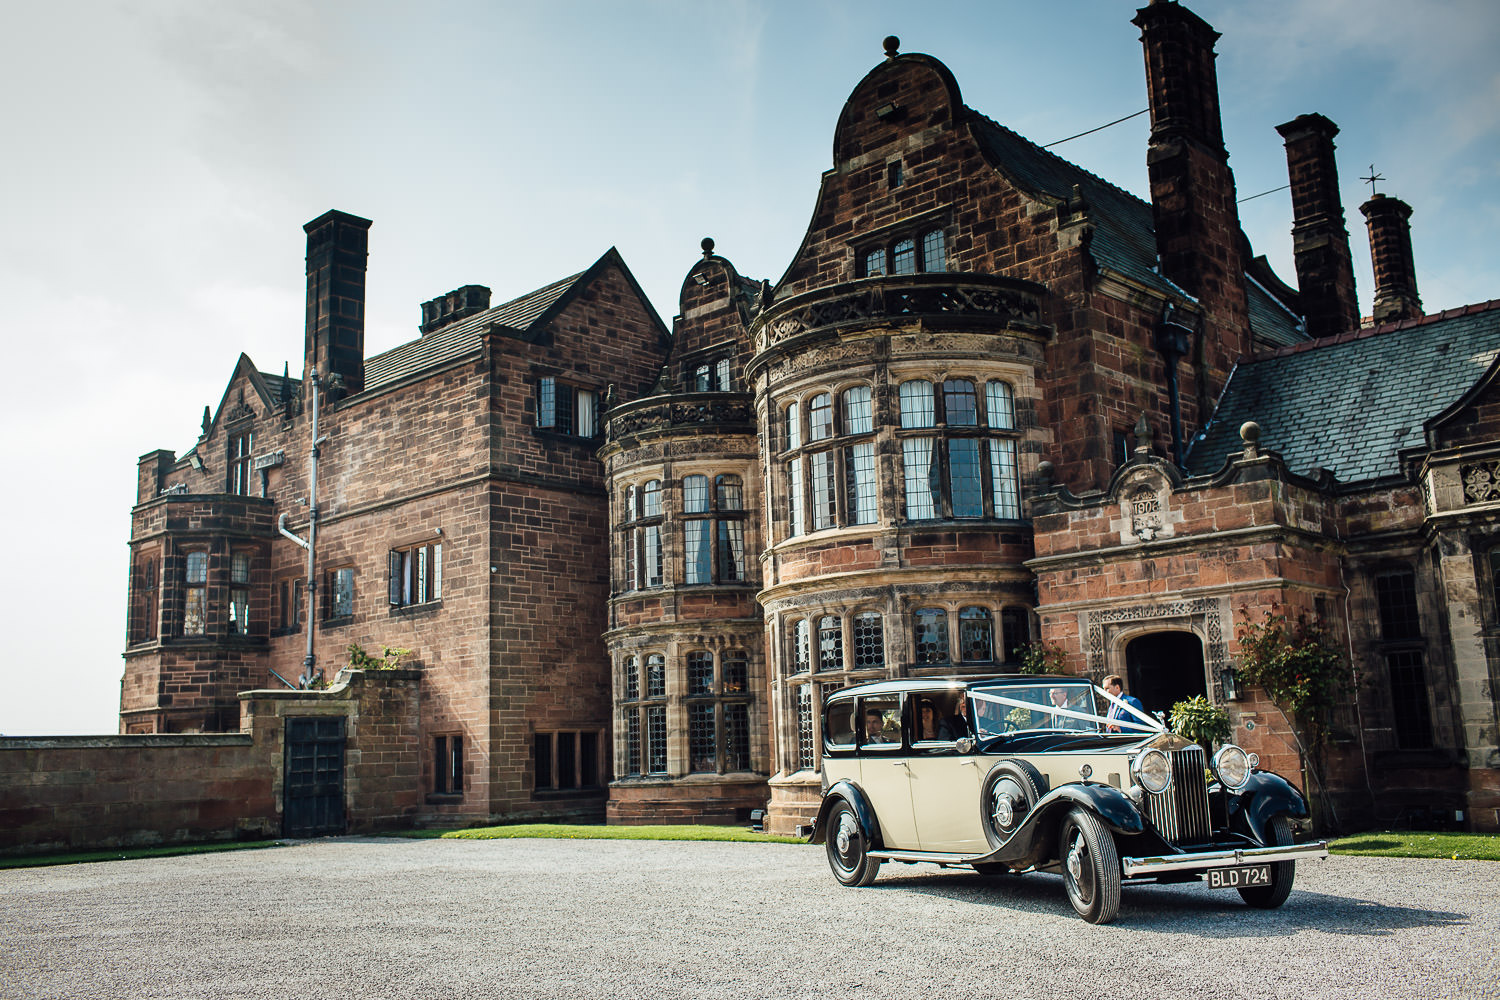 Wedding car outside Thornton Manor in the Wirral